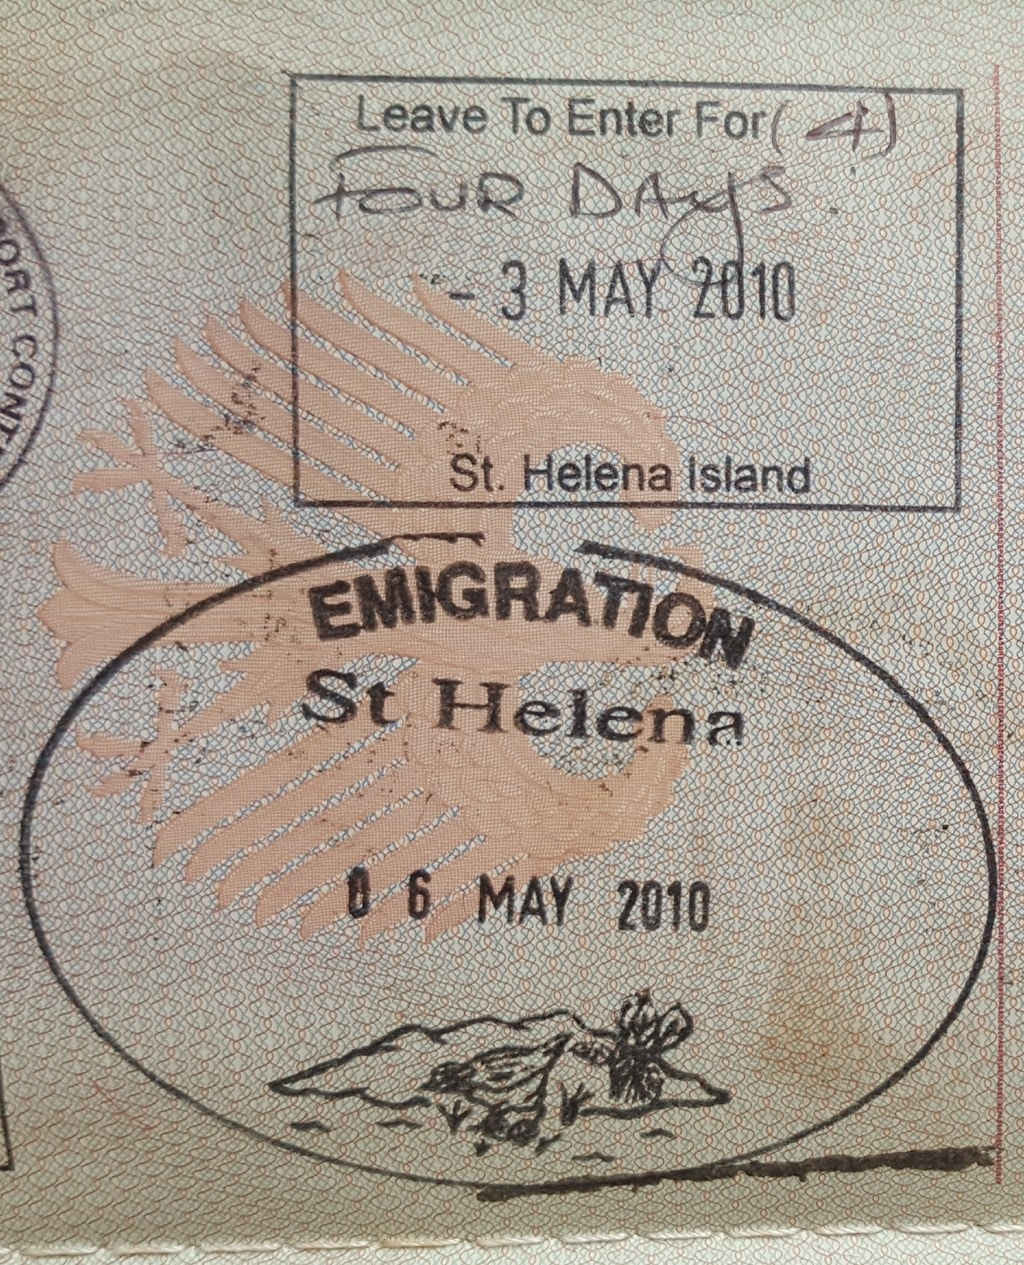 A Collection Of Rare Passport Stamps From All Around The Globe